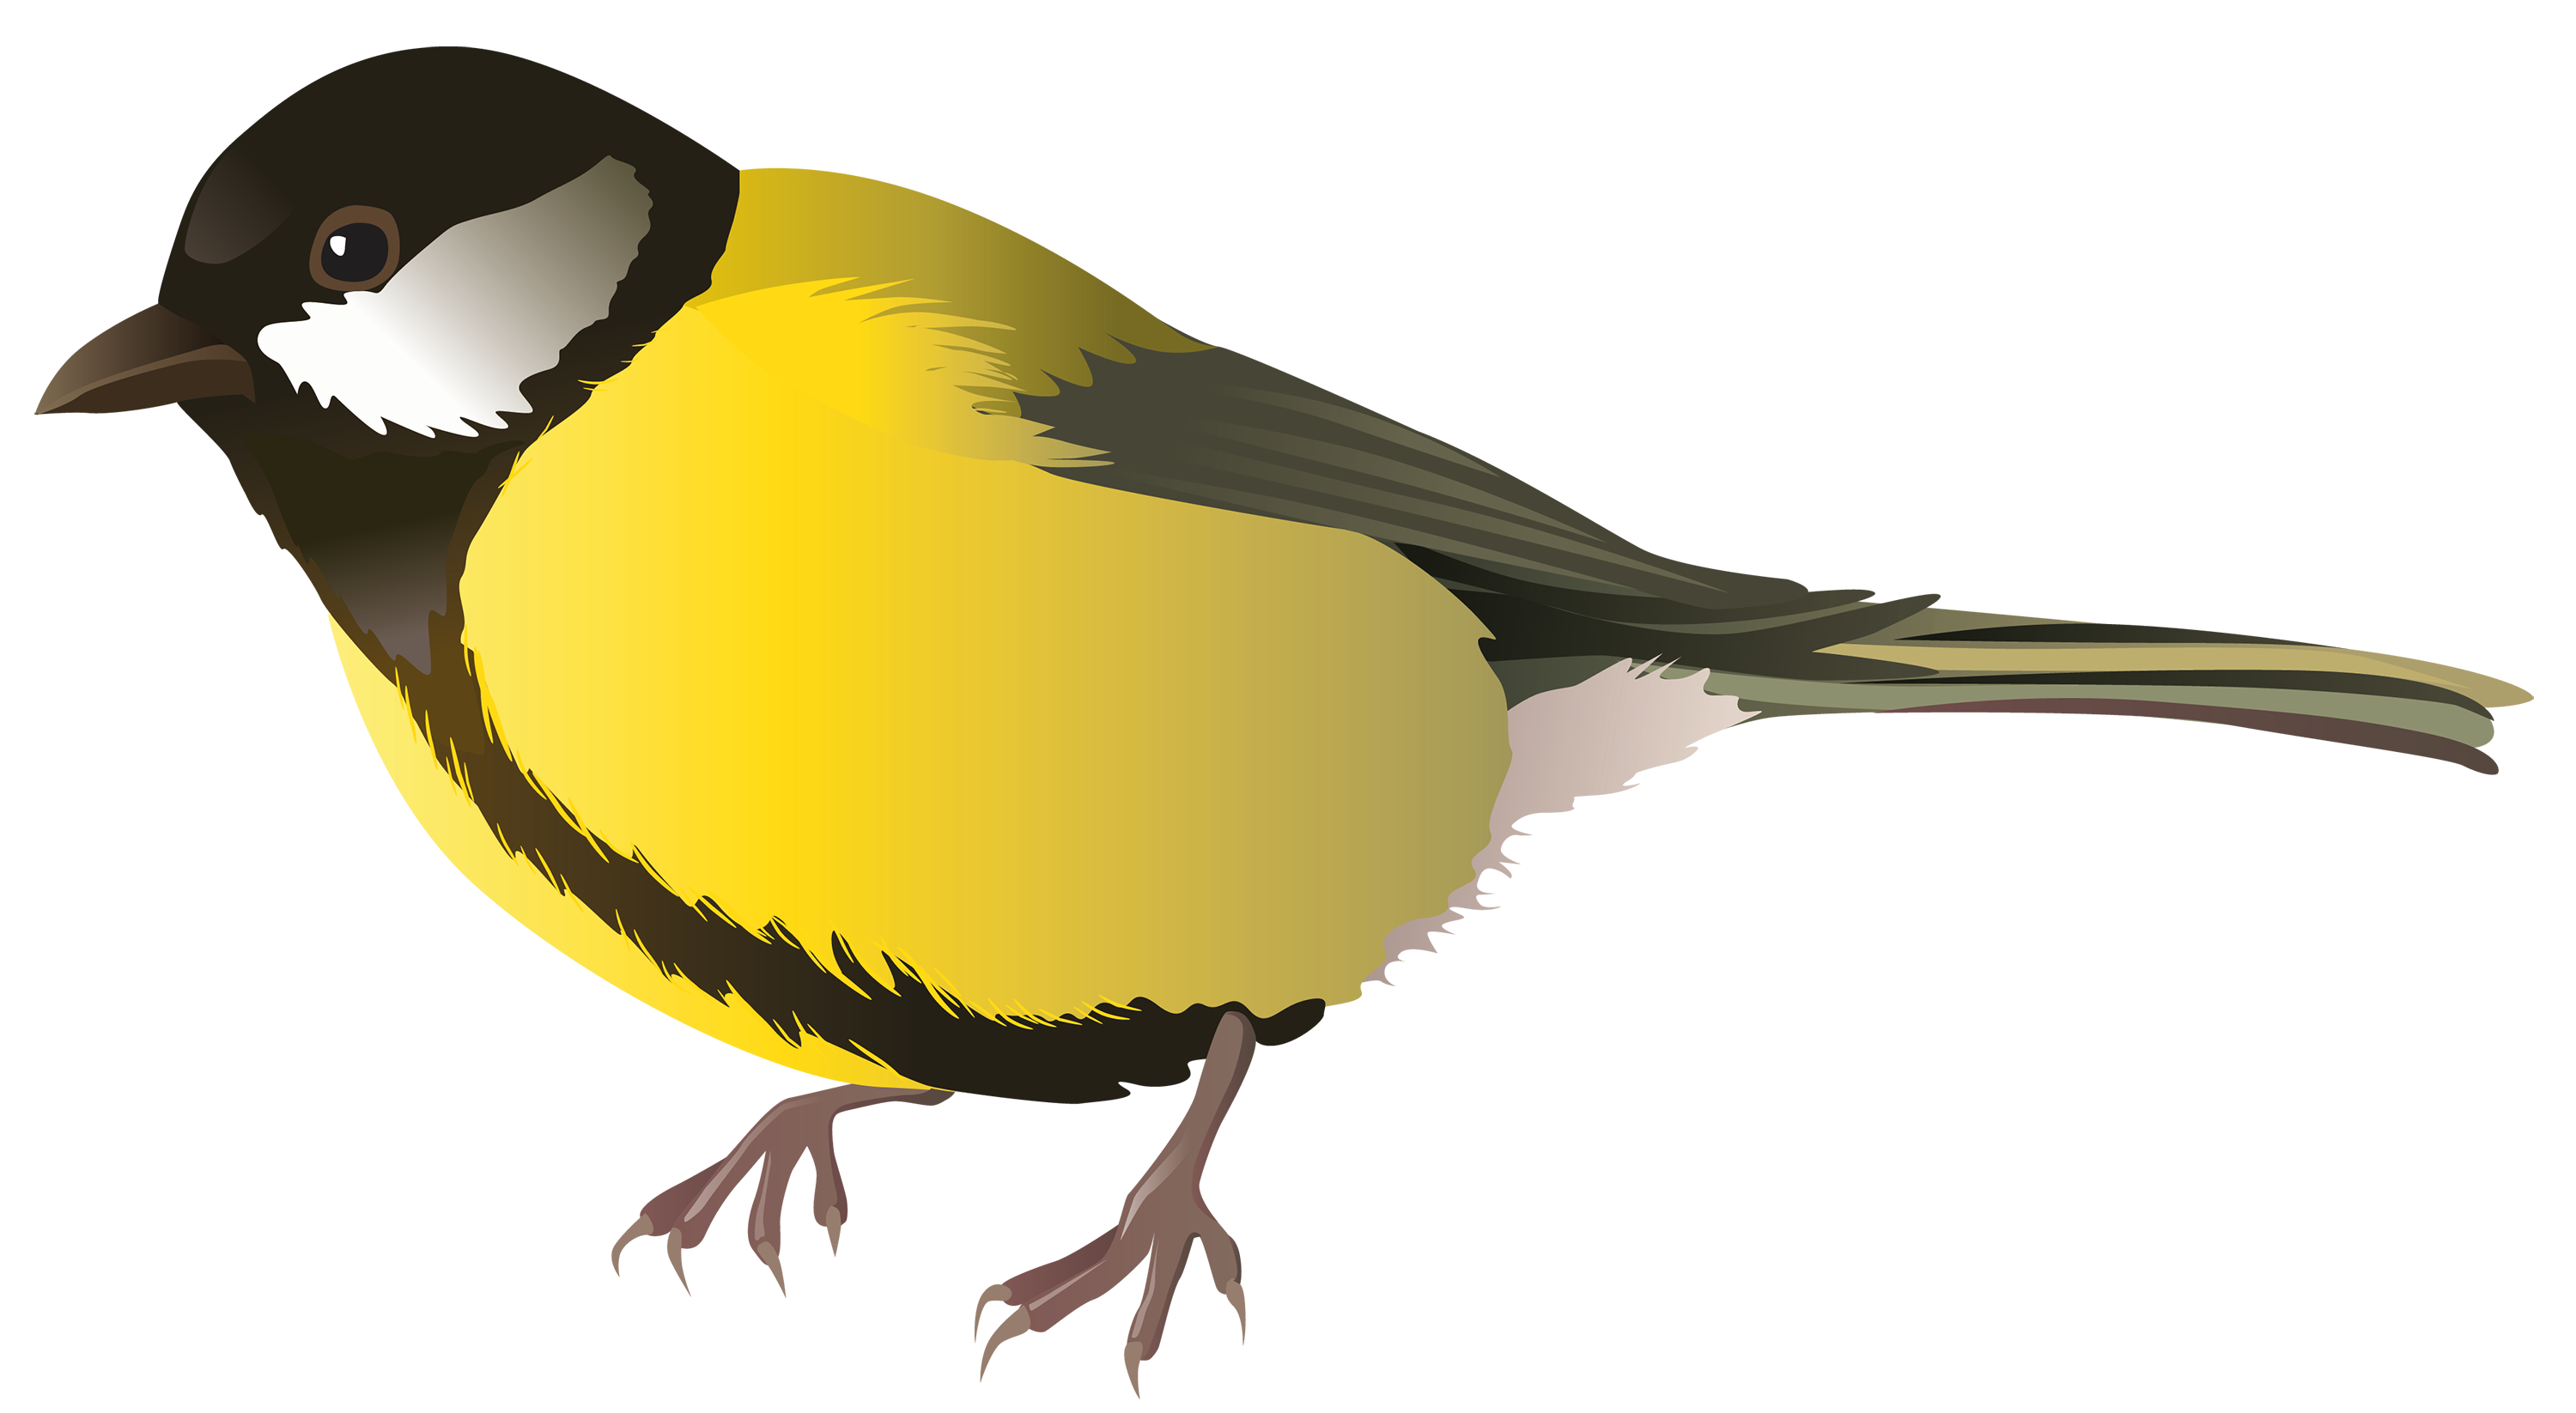 Clipart birds goldfinch. Oriole at getdrawings com